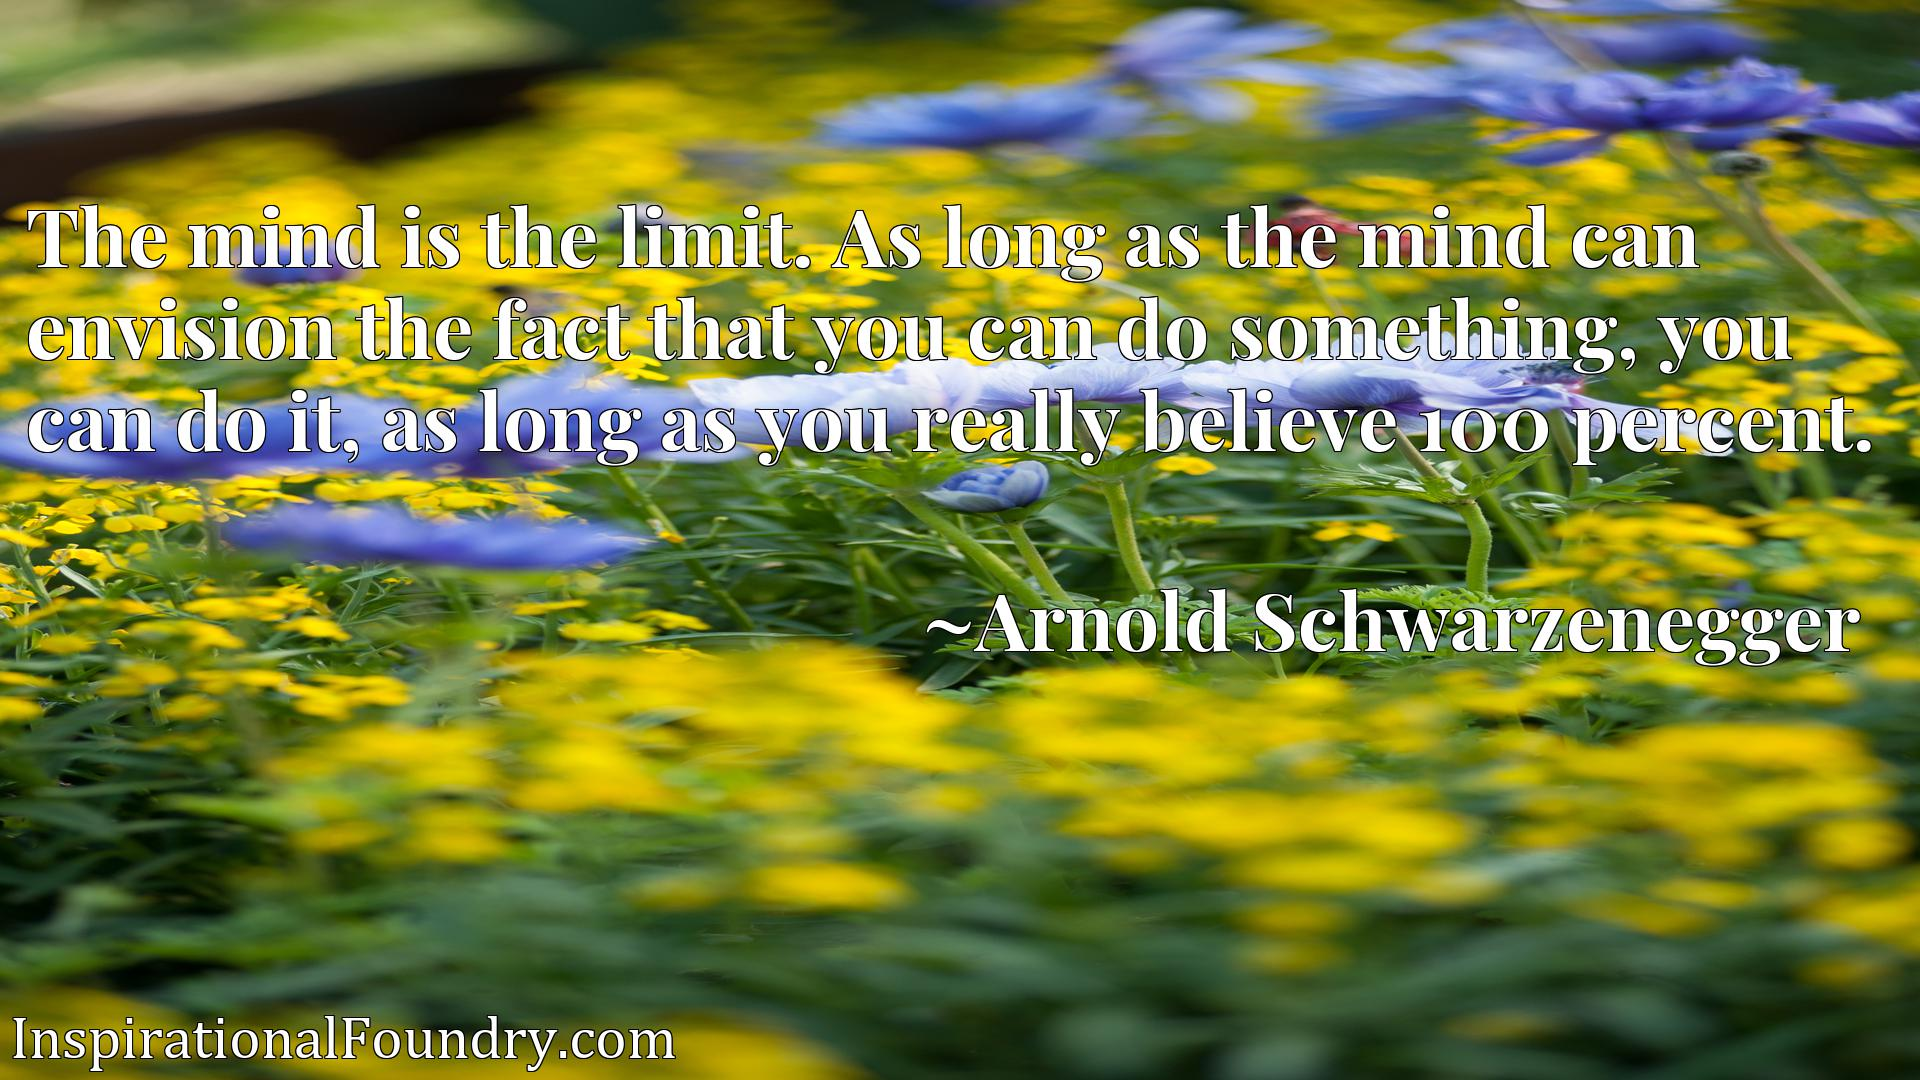 Quote Picture :The mind is the limit. As long as the mind can envision the fact that you can do something, you can do it, as long as you really believe 100 percent.